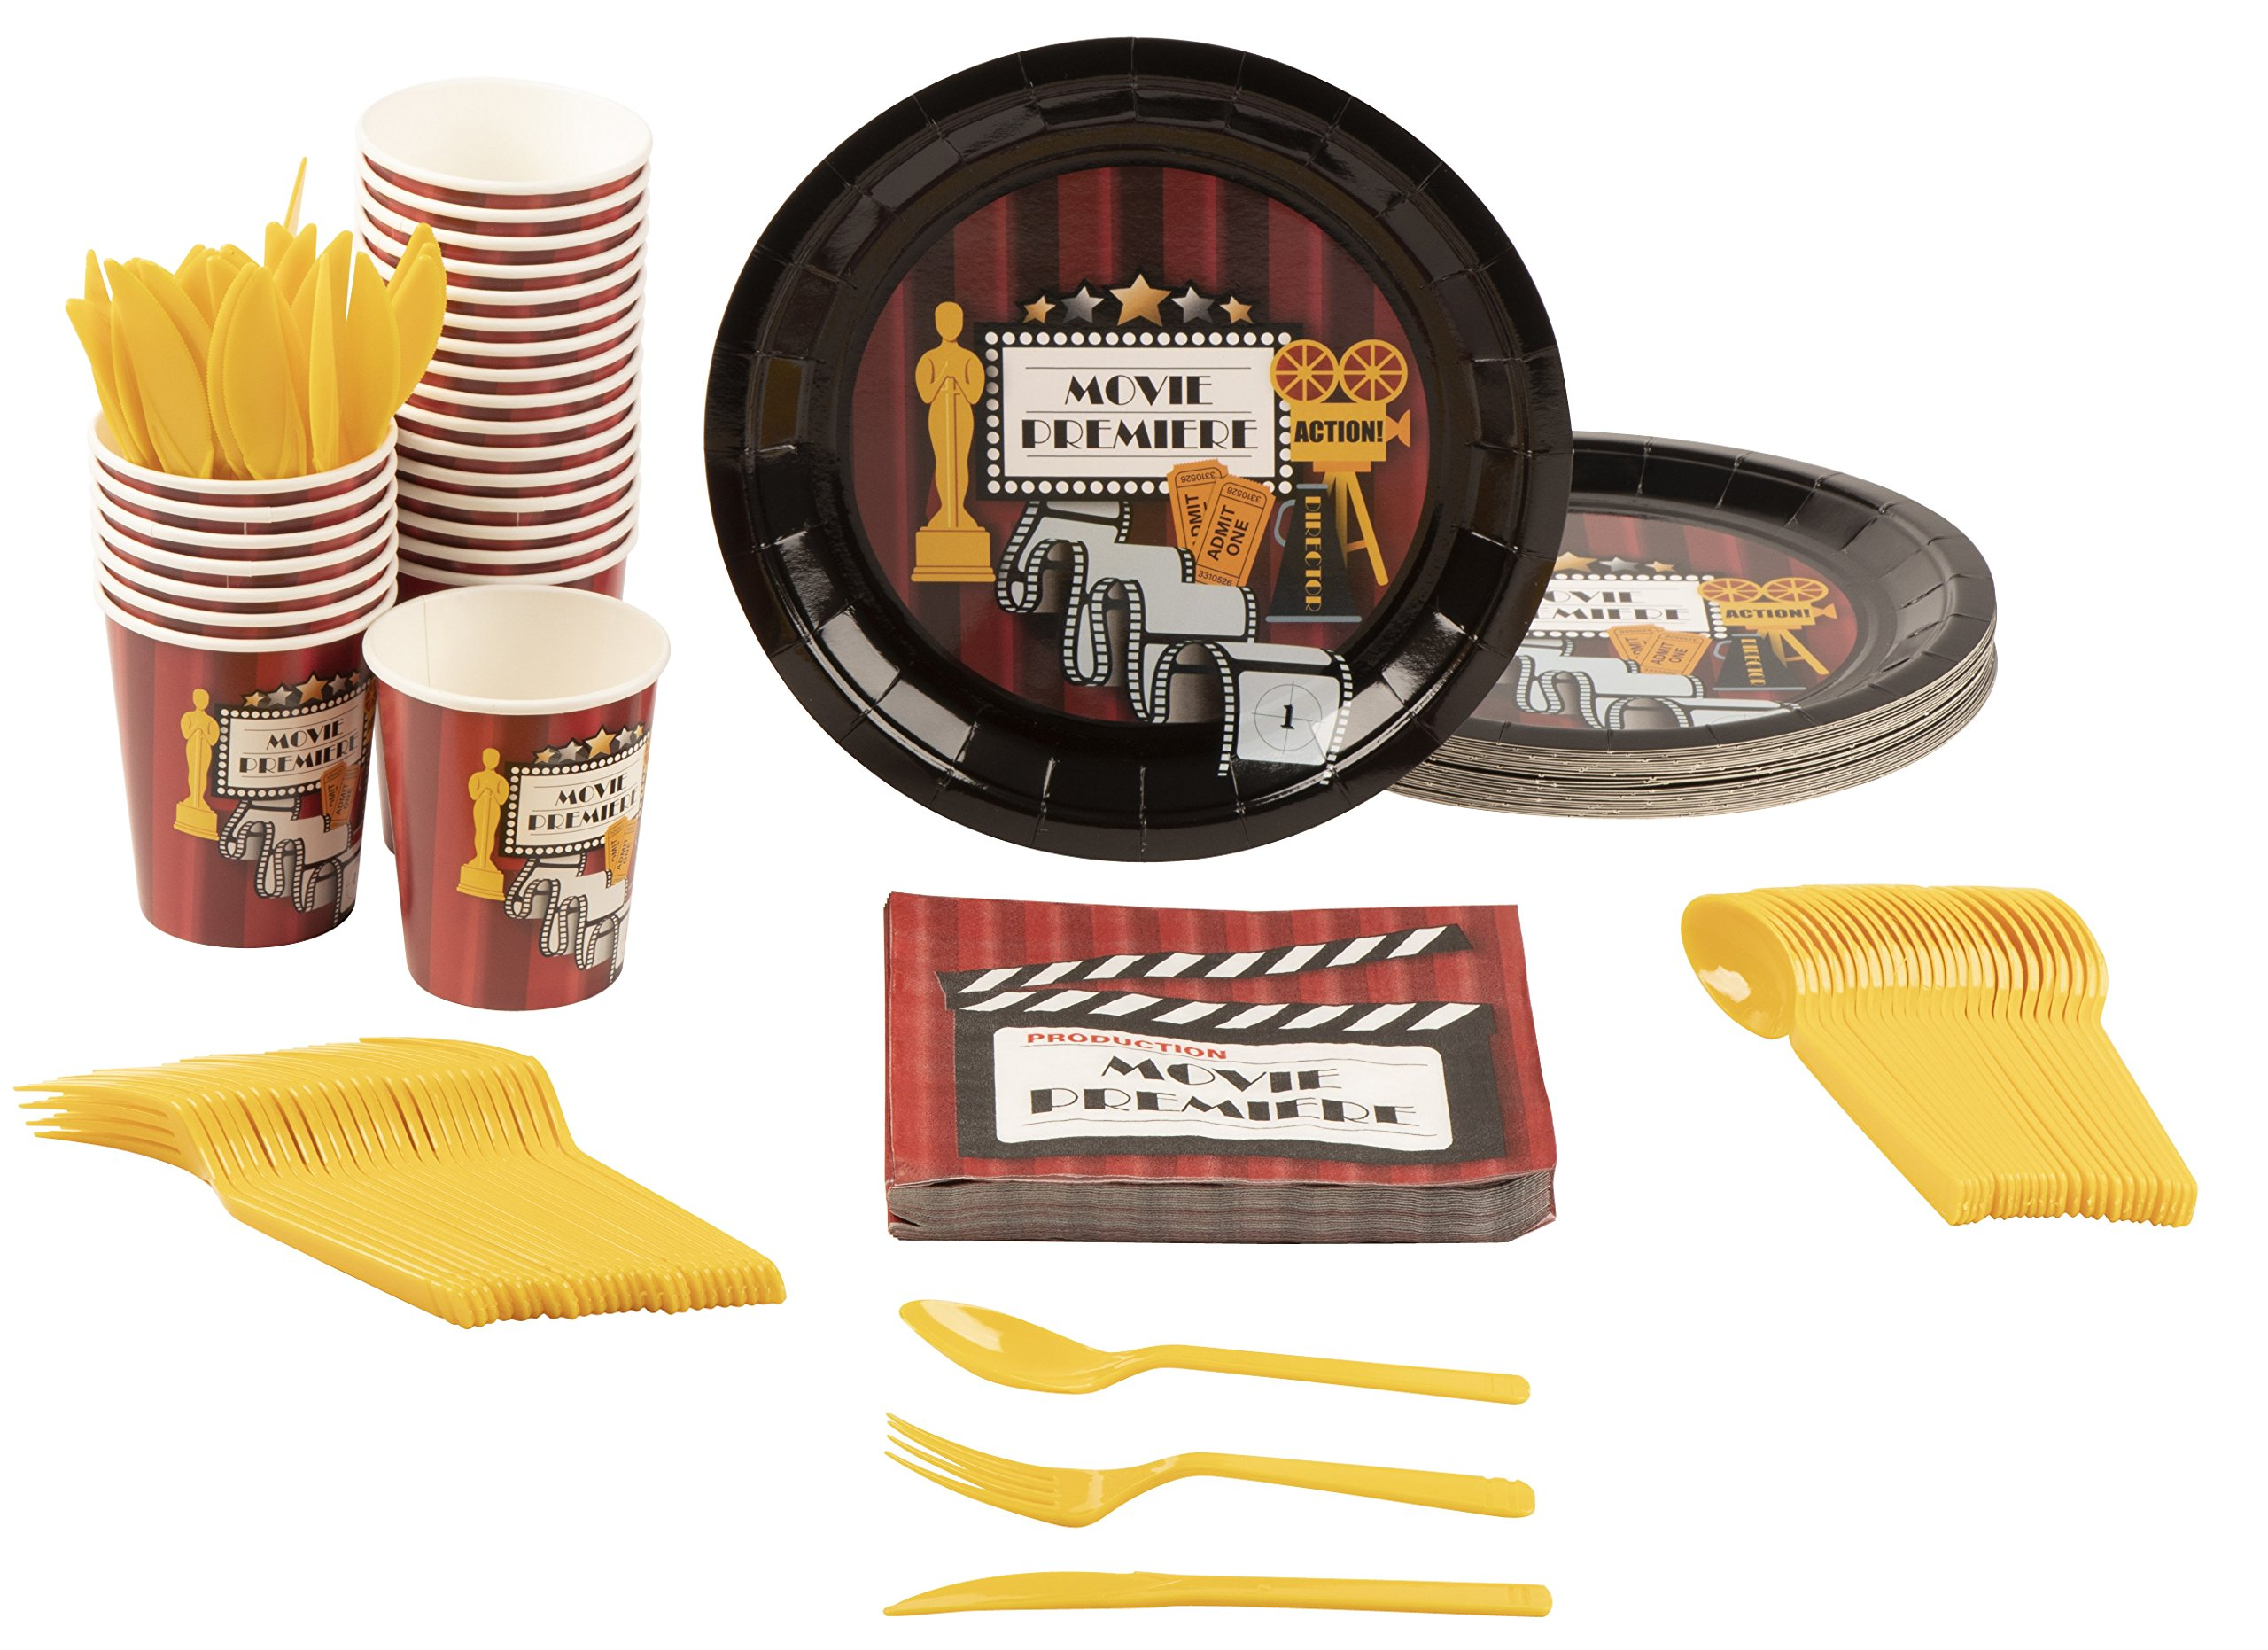 Disposable Dinnerware Set - Serves 24 - Hollywood Party Supplies for Kids Birthdays, Movie Nights, Includes Plastic Knives, Spoons, Forks, Paper Plates, Napkins, Cups by Blue Panda